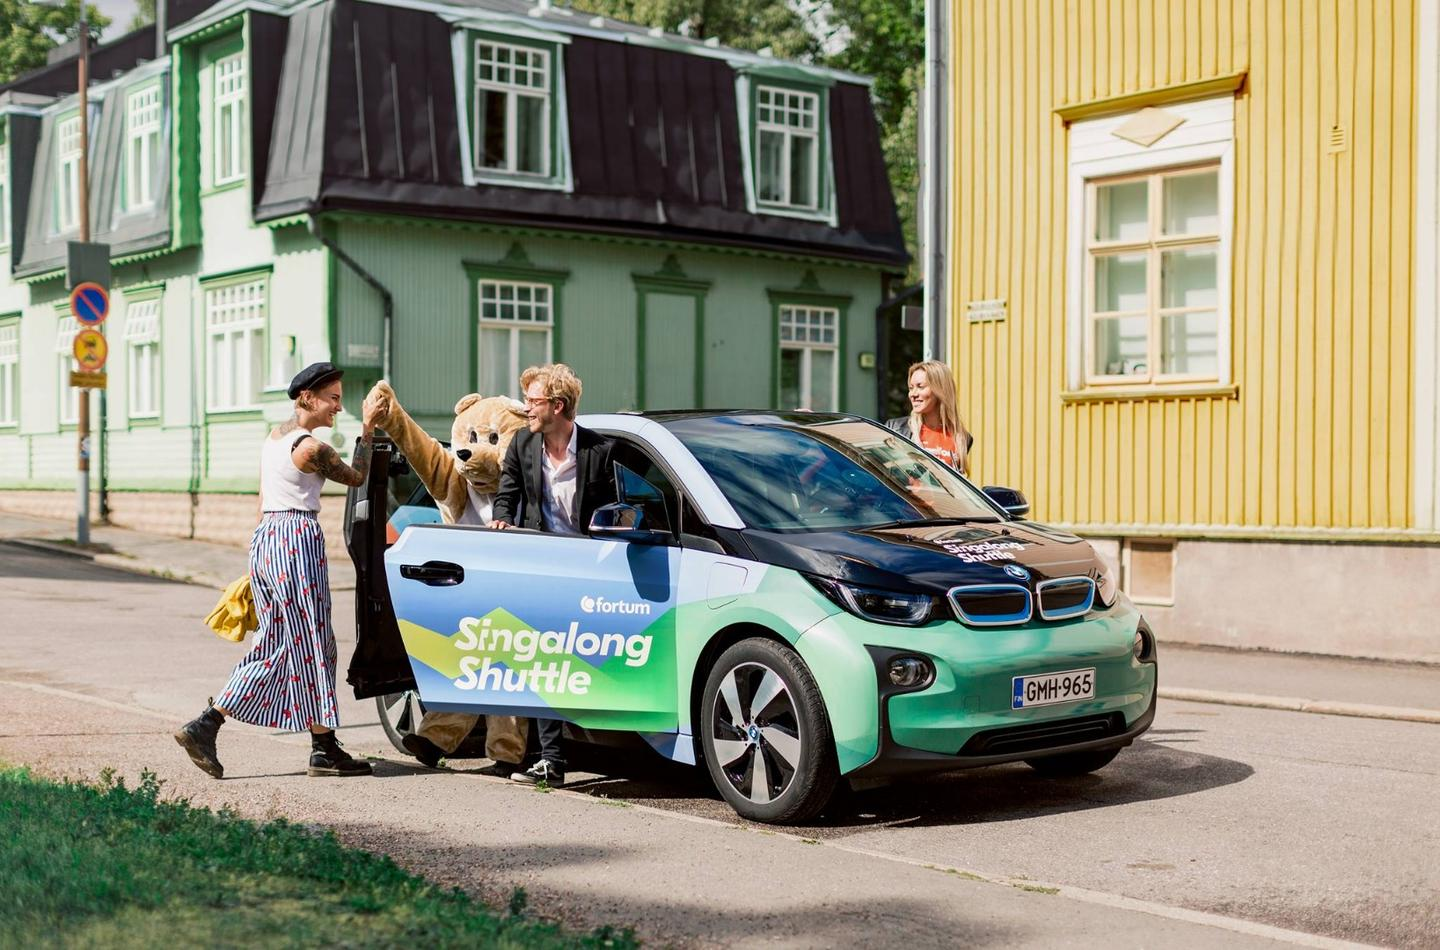 Visitors to Ruisrock in Finland will be able to pay for their electric taxi rides by singing while they are driven to the festival